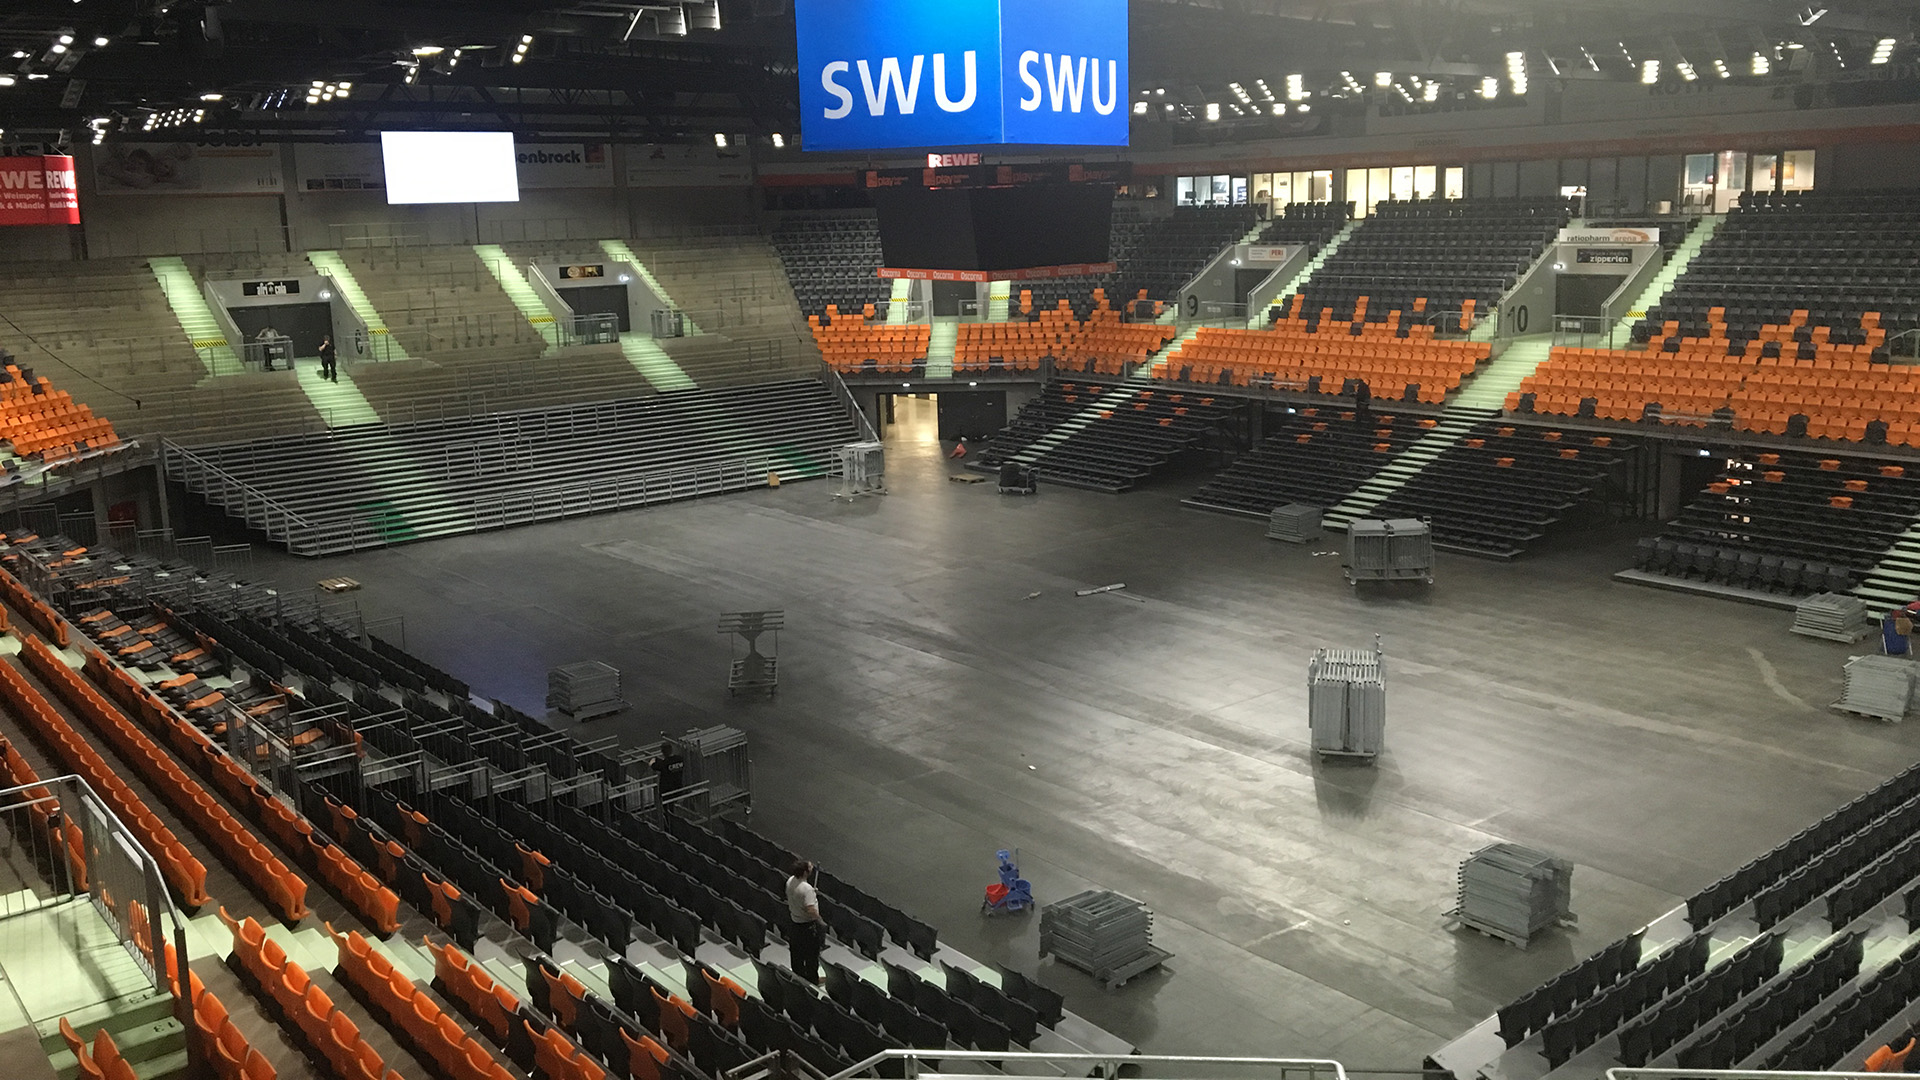 Ratiopharm Arena Ulm Neu Ulm Vision4venue We Create